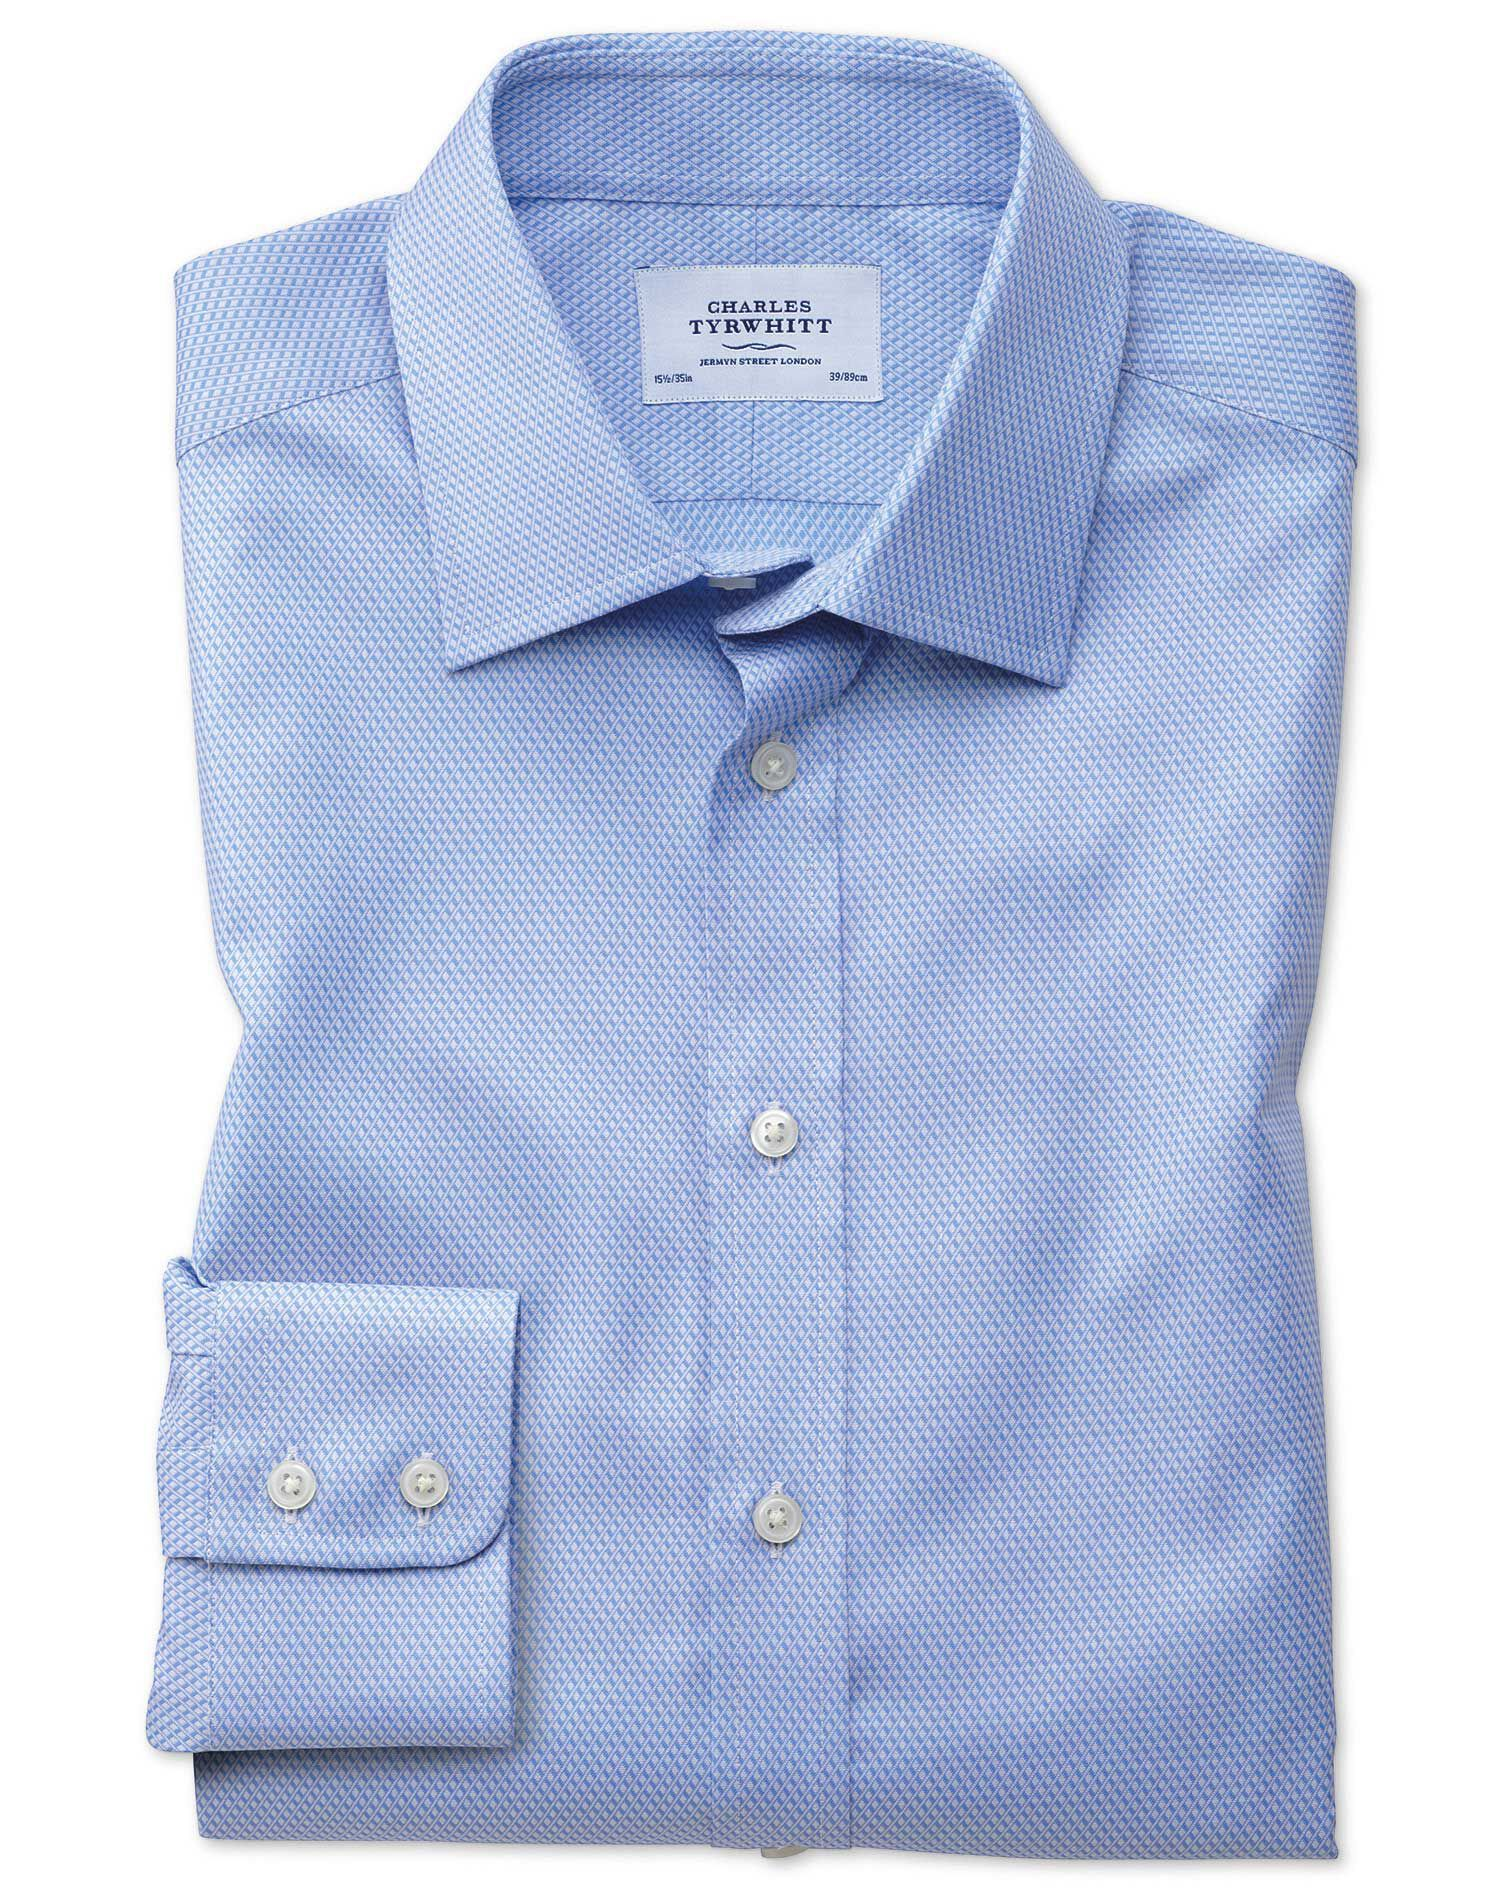 Classic Fit Egyptian Cotton Diamond Pattern Sky Blue Formal Shirt Single Cuff Size 17/37 by Charles